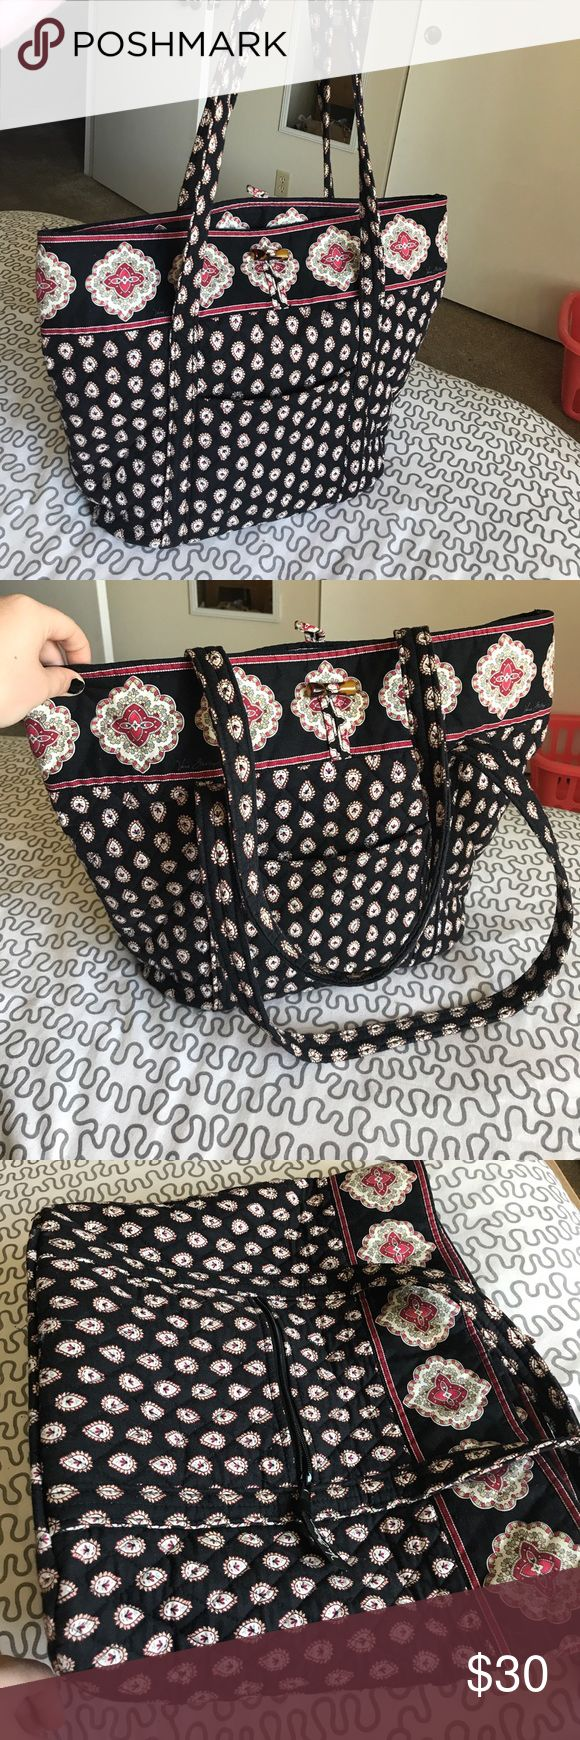 Vera Bradley Tote Bag, Perfect Condition Any size laptop would fit inside. 16 inches tall, 14 across. Like new. Smoke-free home. Vera Bradley Bags Totes